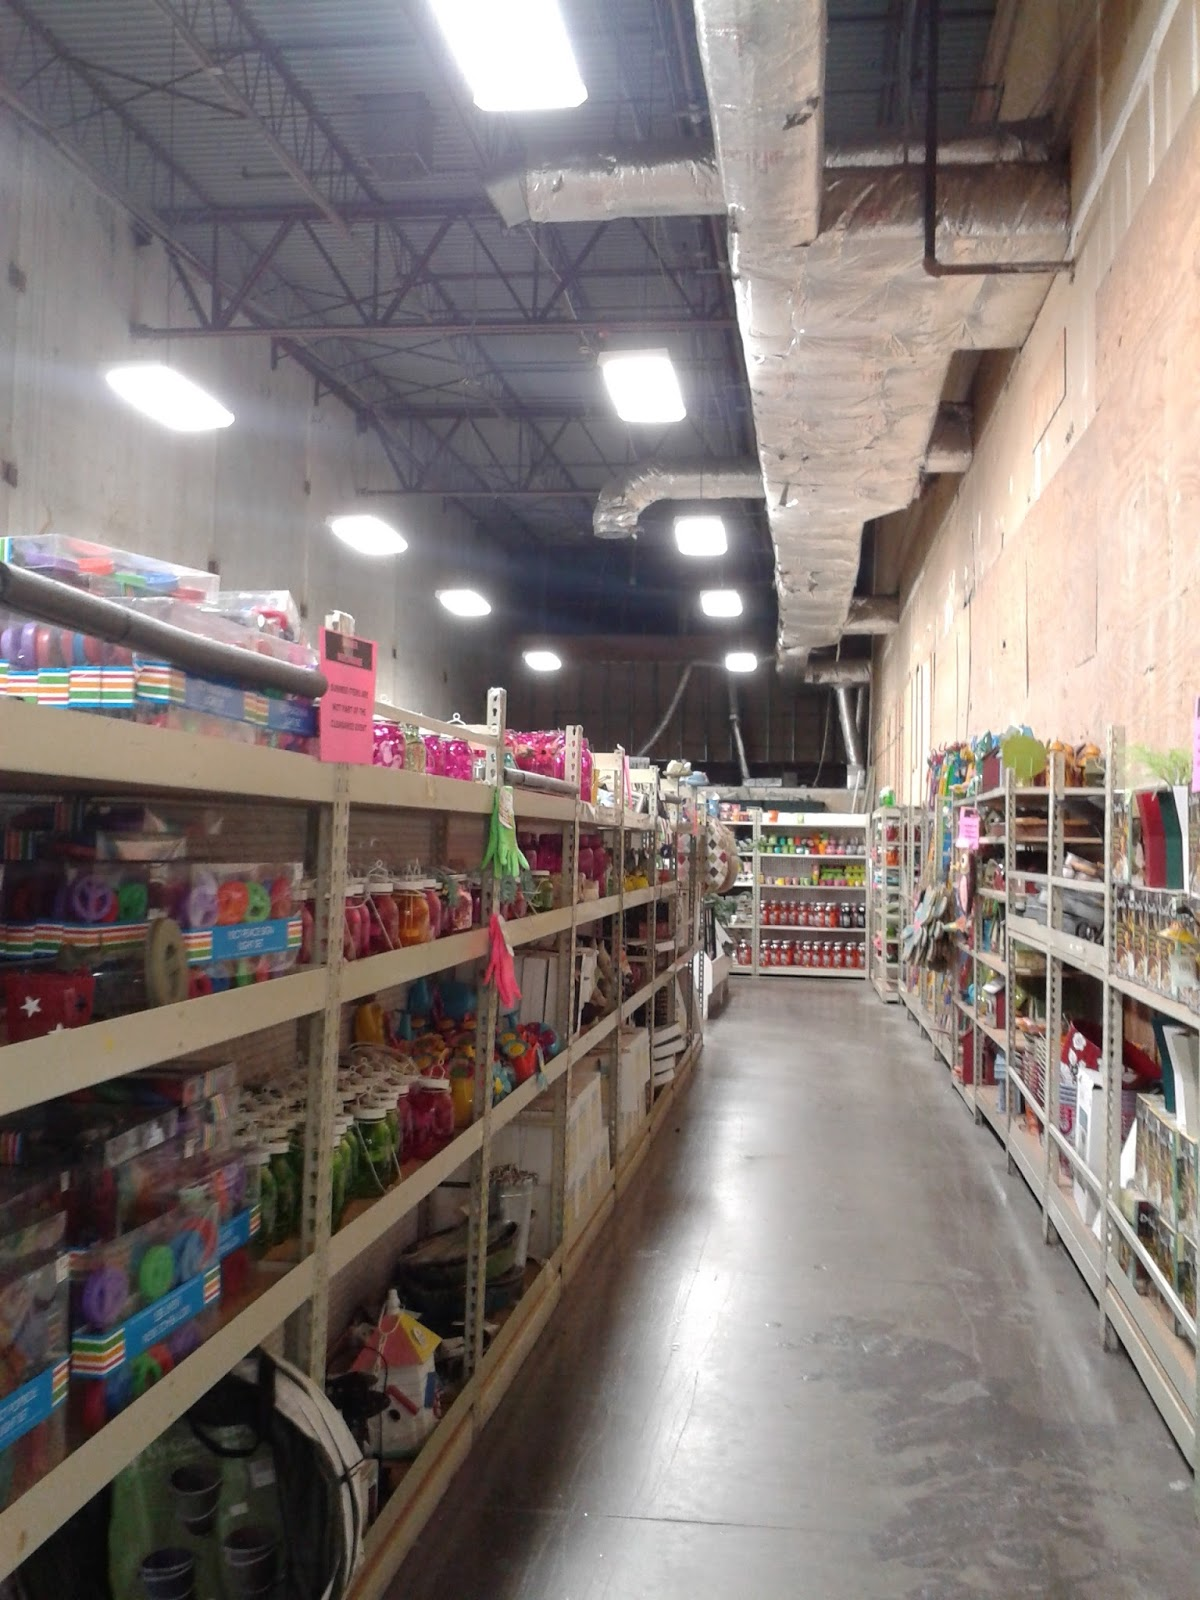 albertsons florida blog a look at the original safeway florida inside the clearance department looking toward the back i think this area was originally backroom space of some kind when save and pack was here